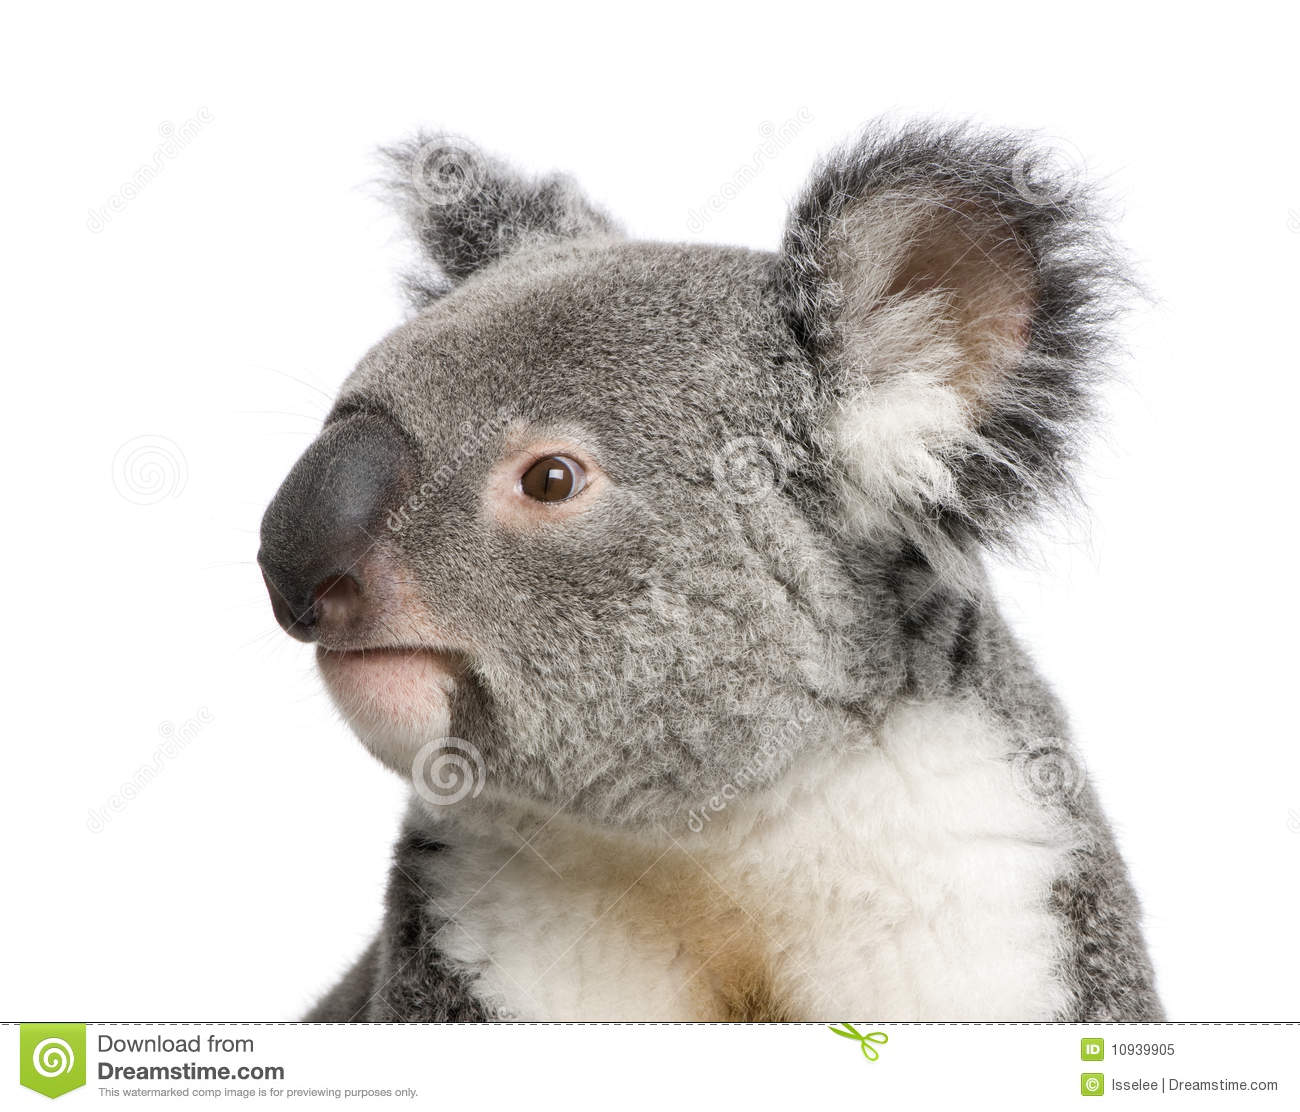 Nature Images 2mb: Koala Bears In Front Of A White Background Royalty Free